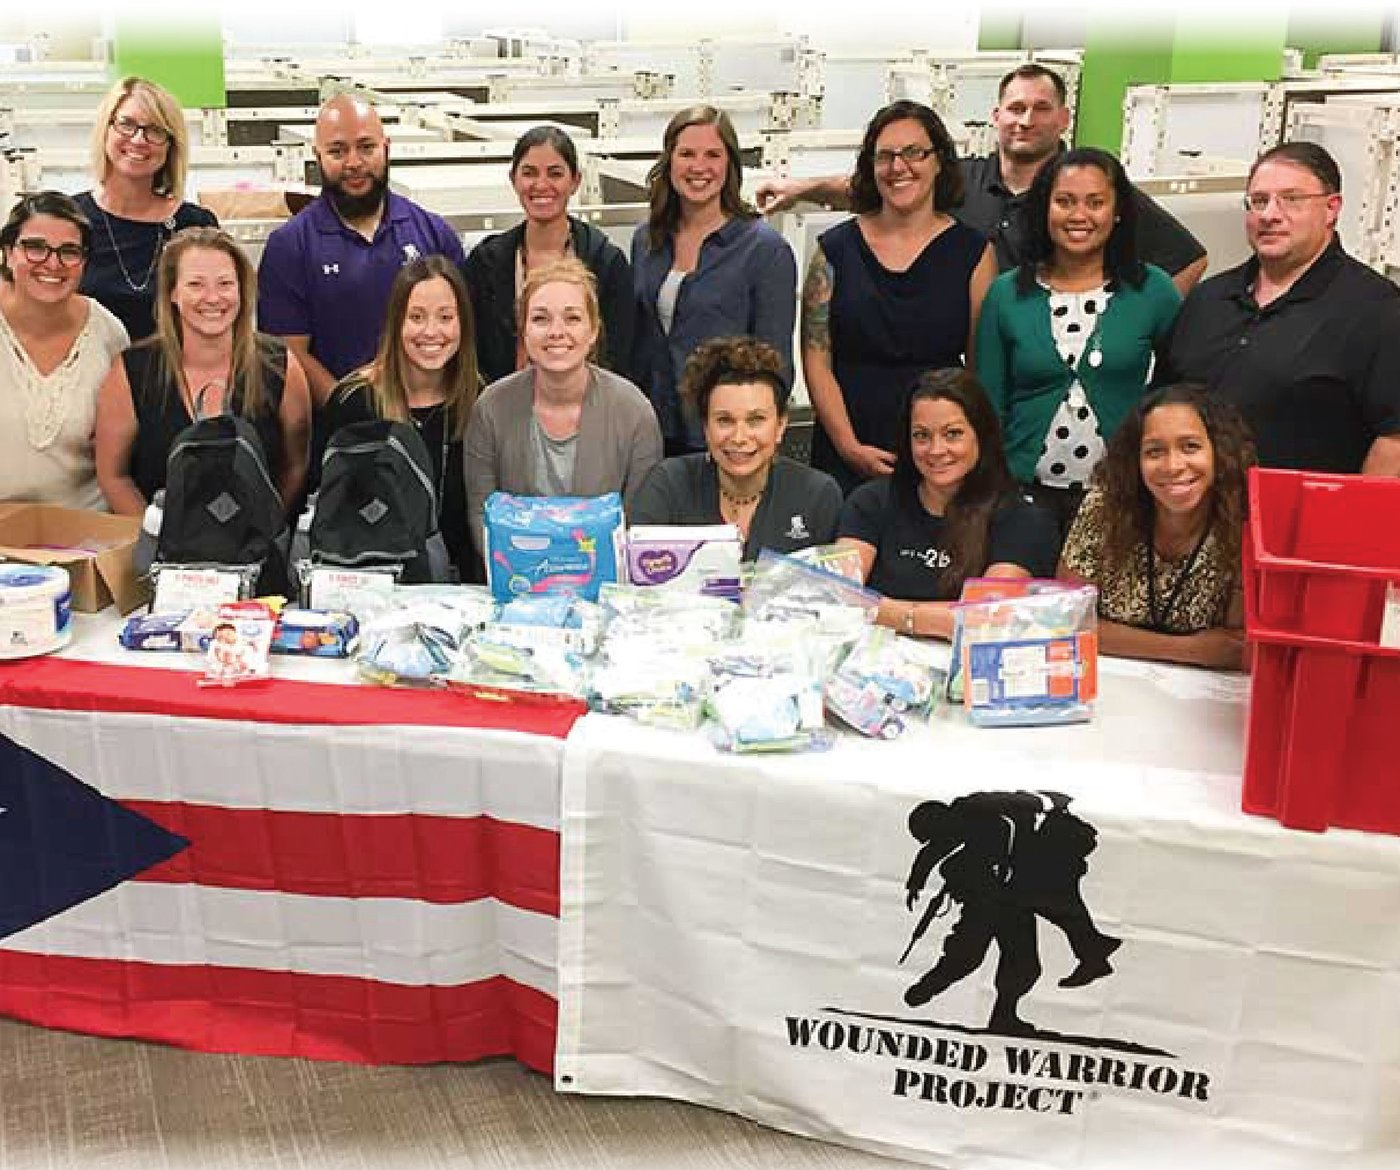 Employees take part in a volunteer service project to create packages for those affected by Hurricane Maria in Puerto Rico.